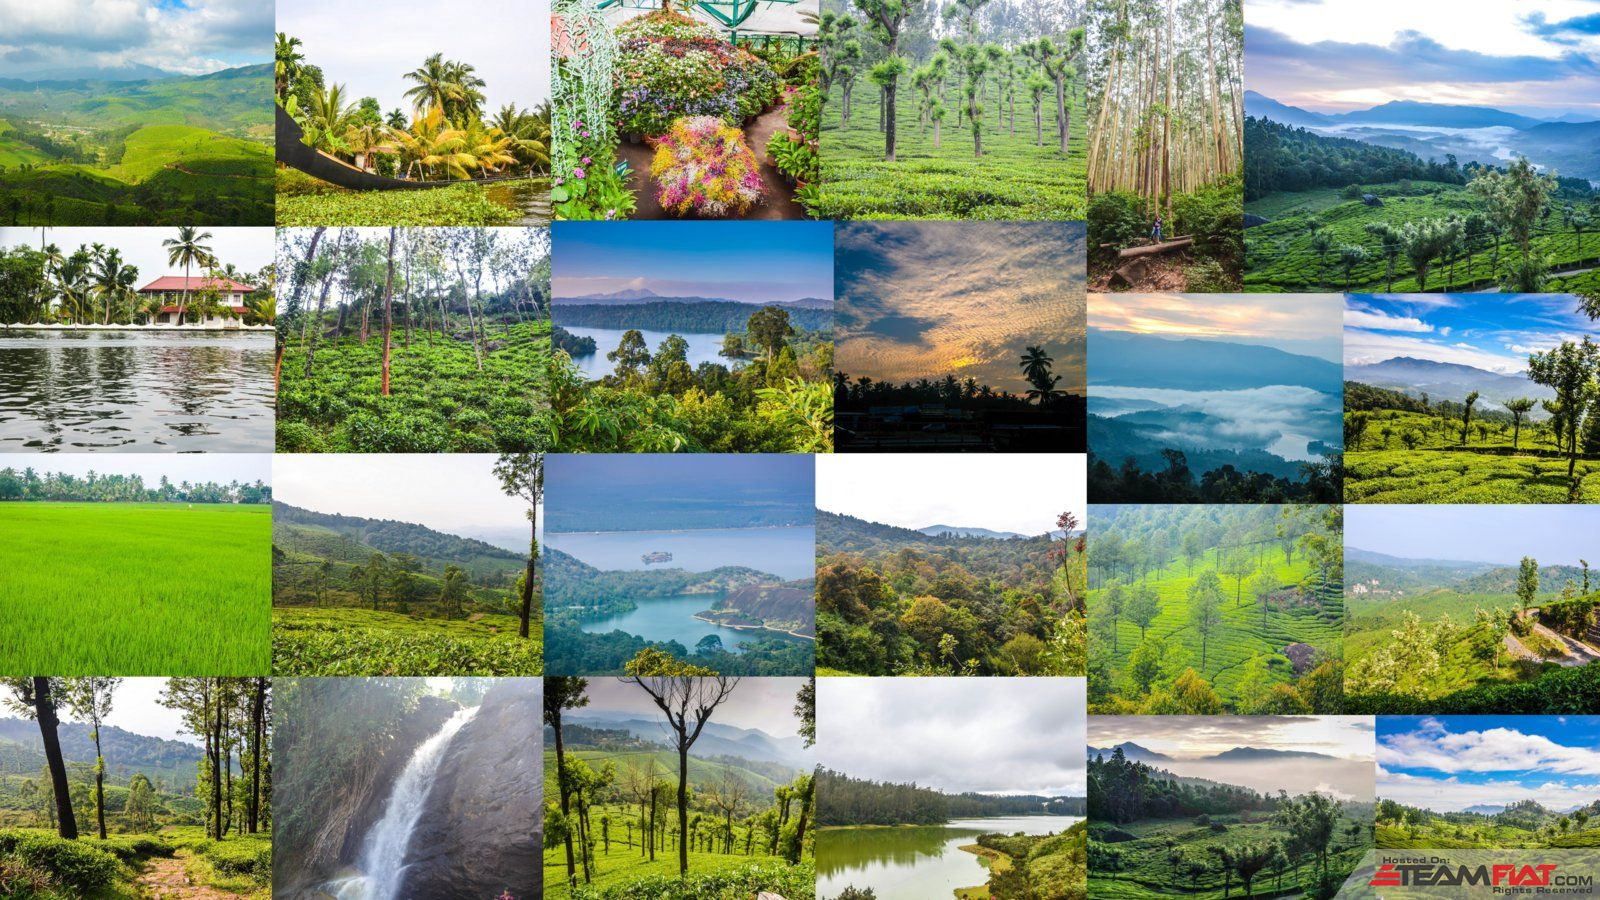 Kerala-Collage-PP.jpg